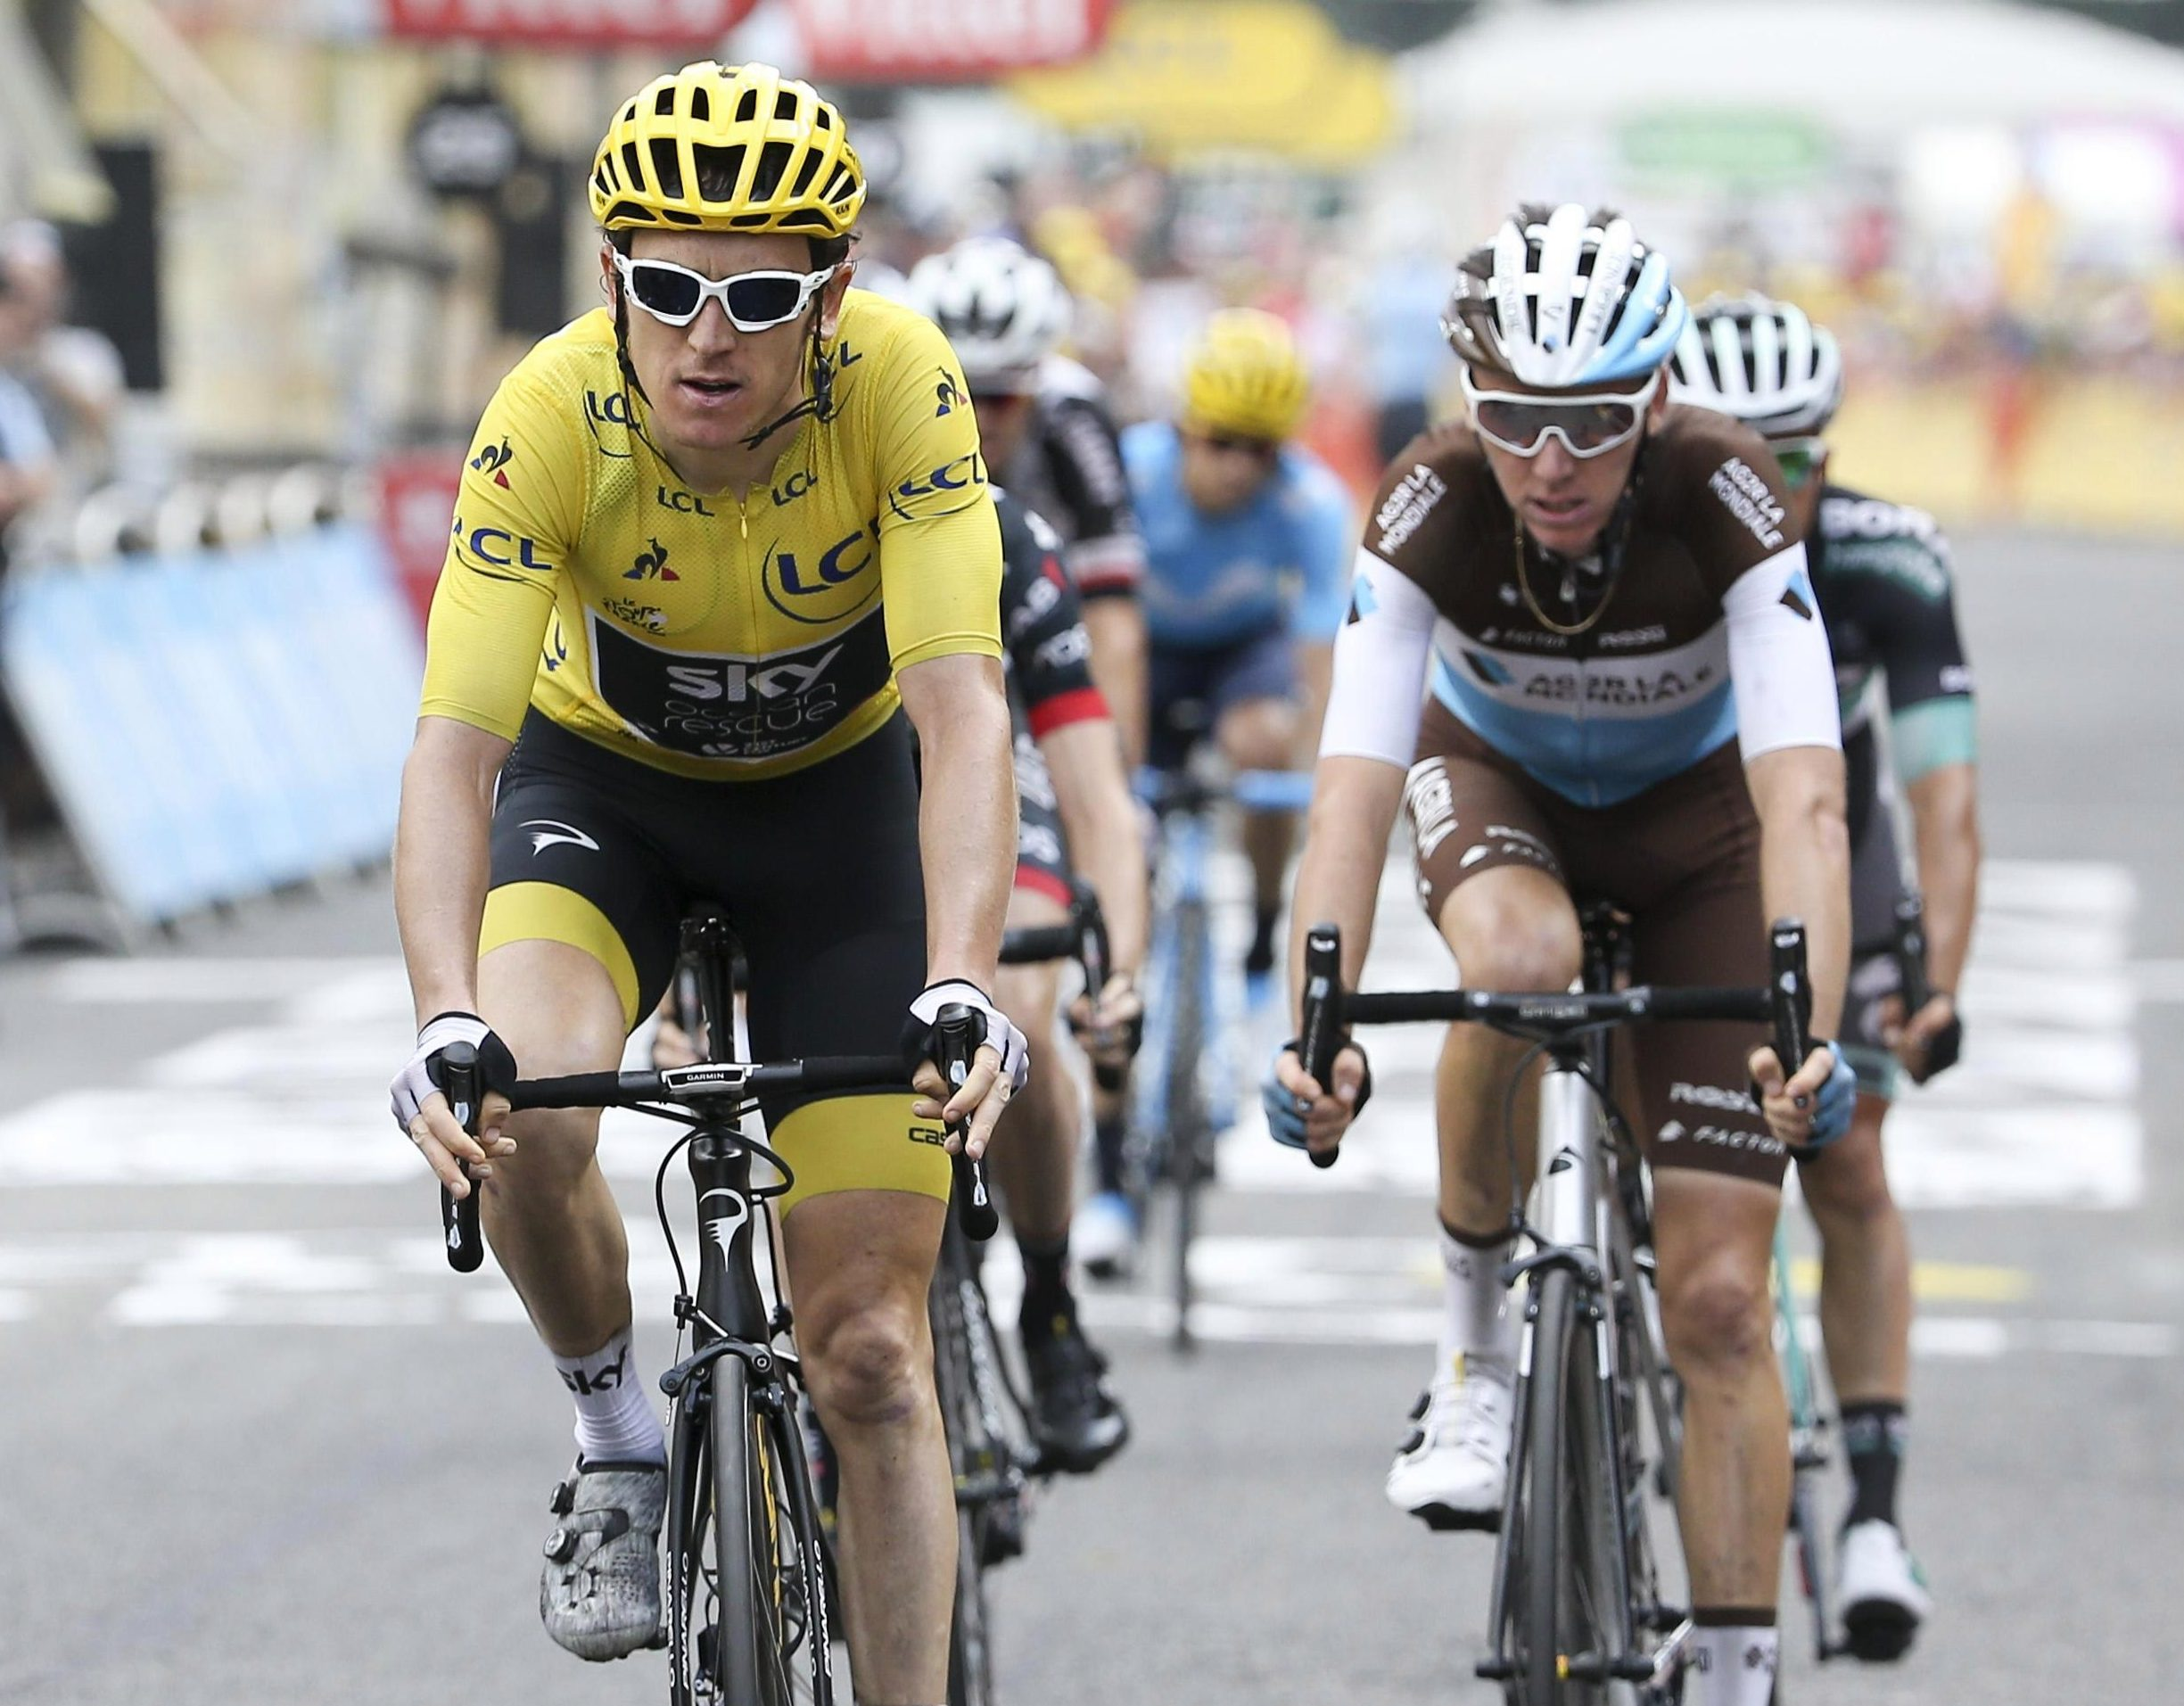 Geraint Thomas came second on stage 19, boosting his overall Tour de France lead